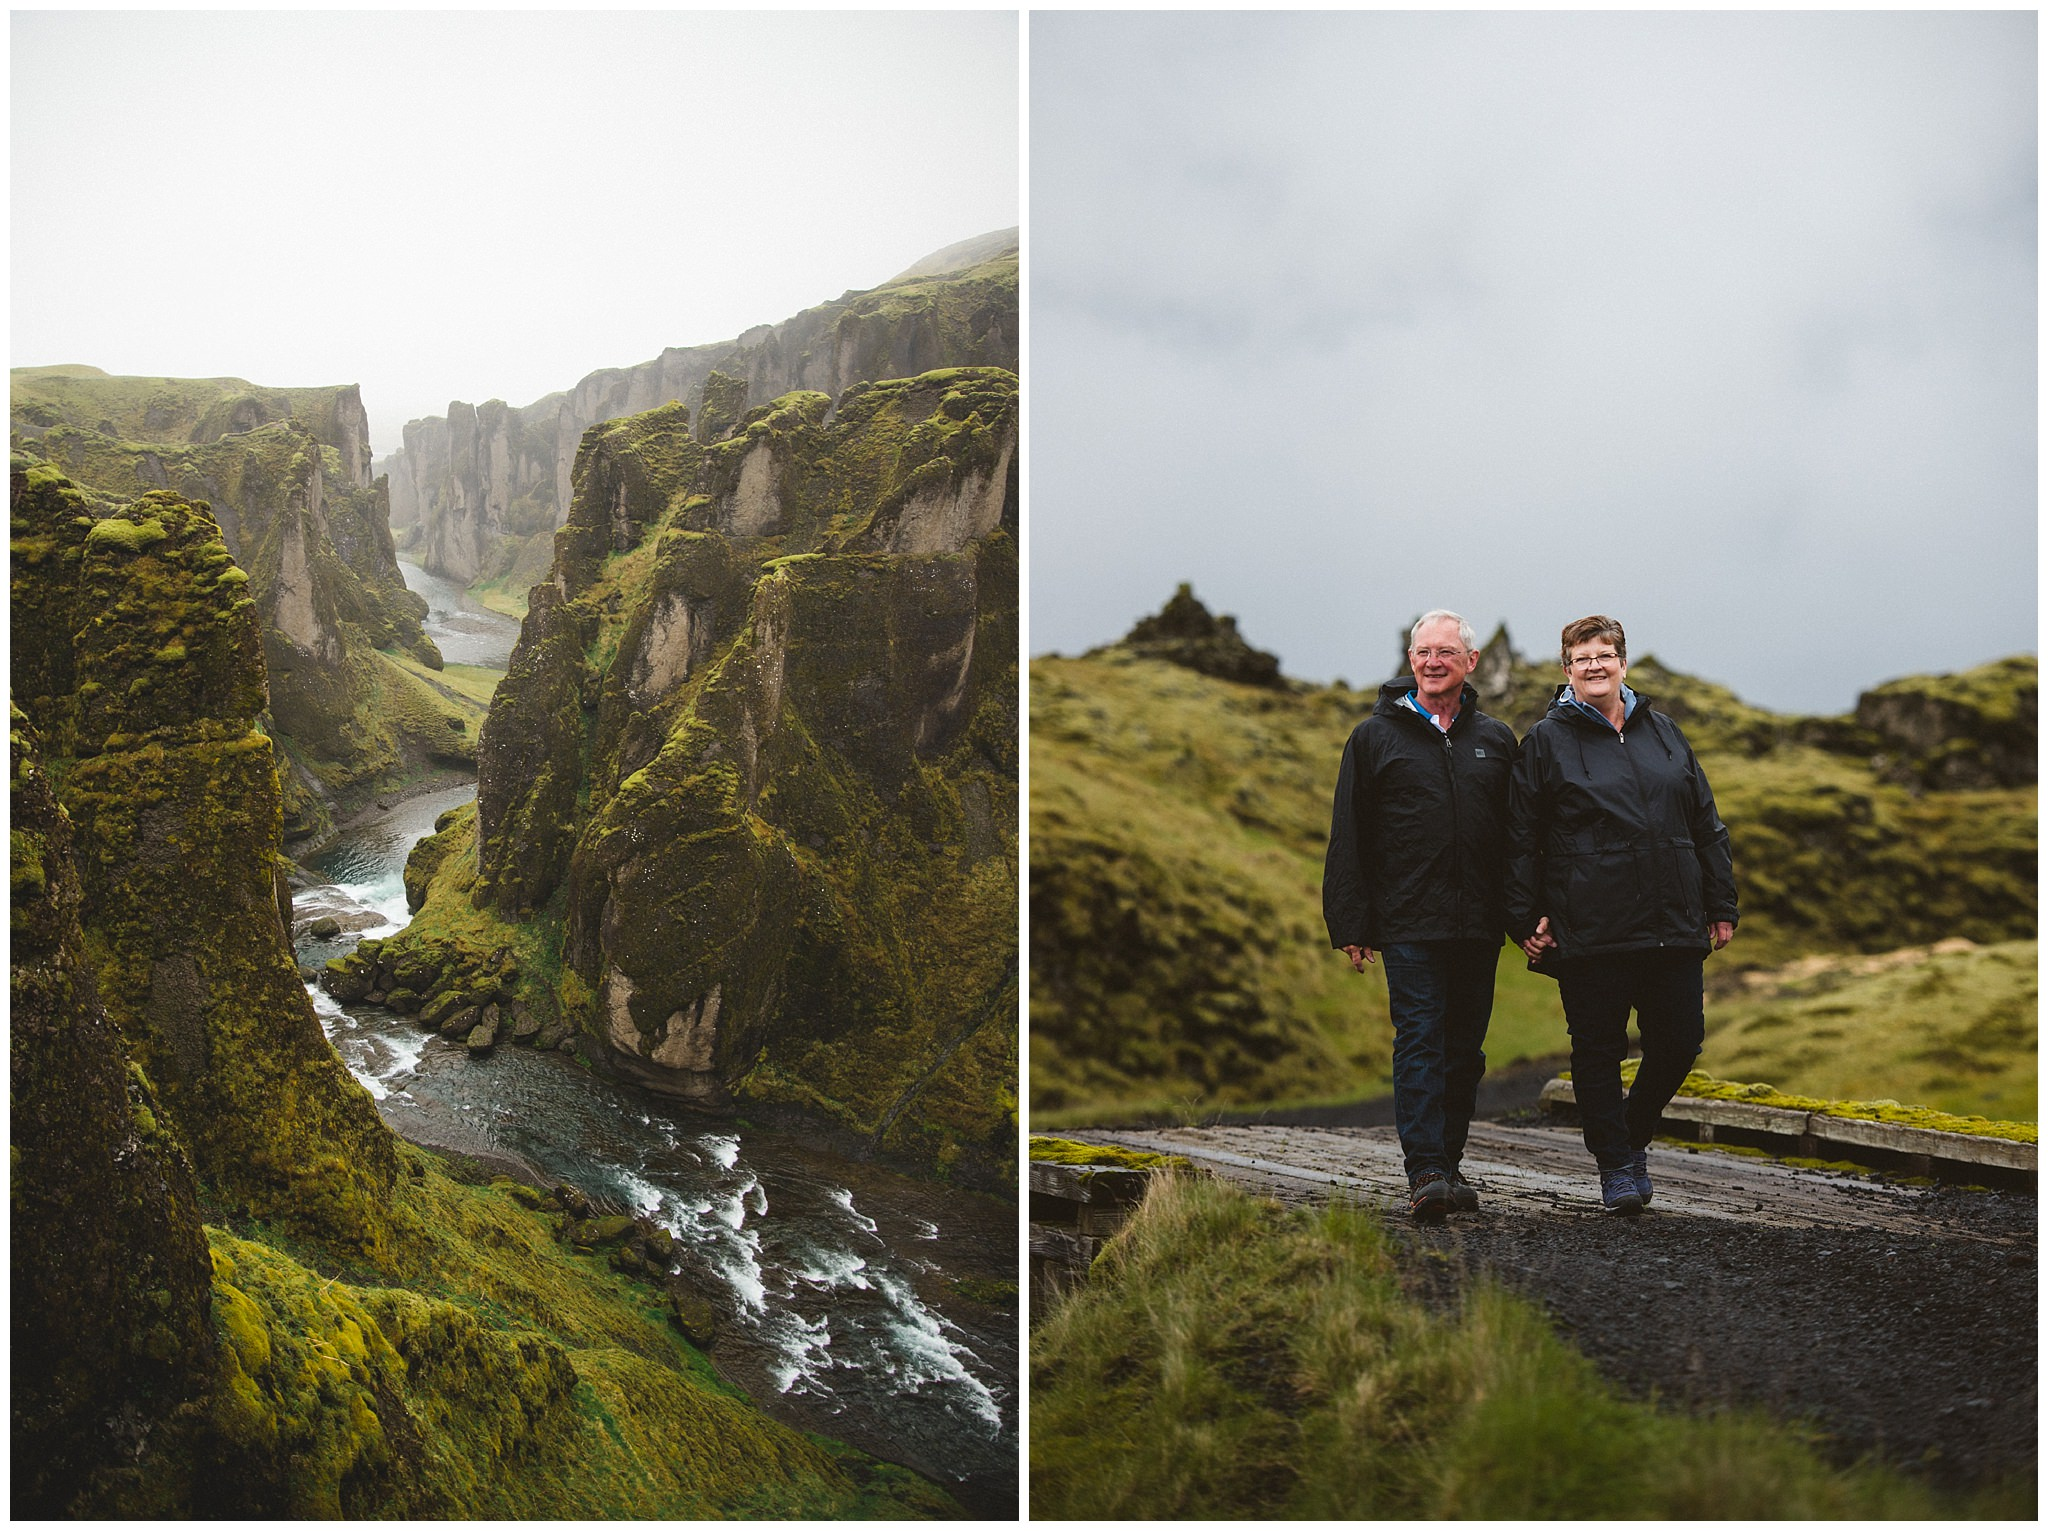 Iceland, Iceland wedding photographer, destination wedding photographer, travel photography, bc wedding photographer, Vancouver wedding photographer, Ronnie Lee Hill Photography, Kirkjubaejarklaustur, Fjaorargljufur